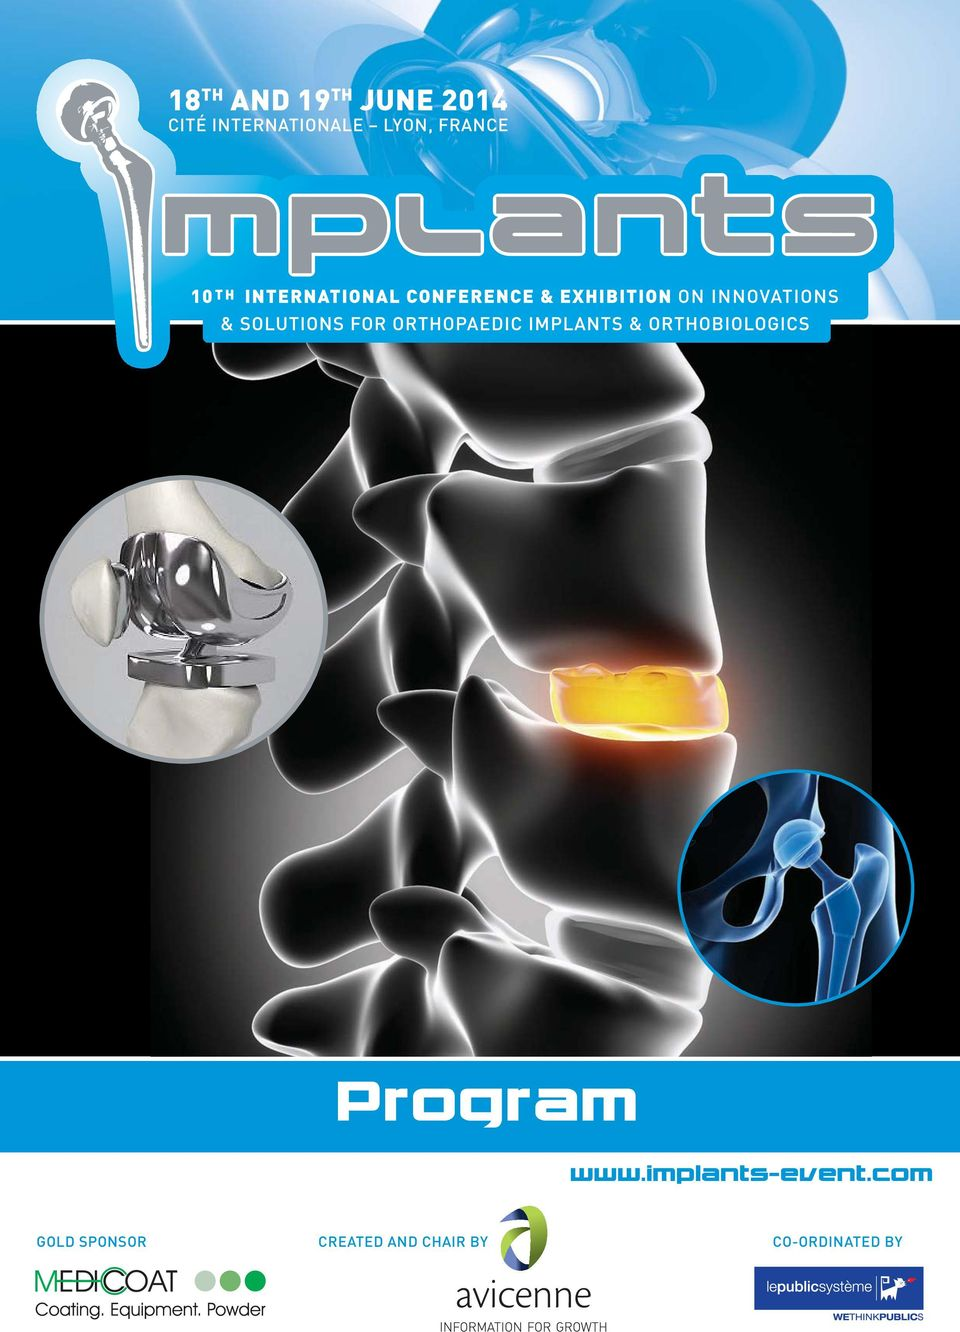 Program www.implants-event.